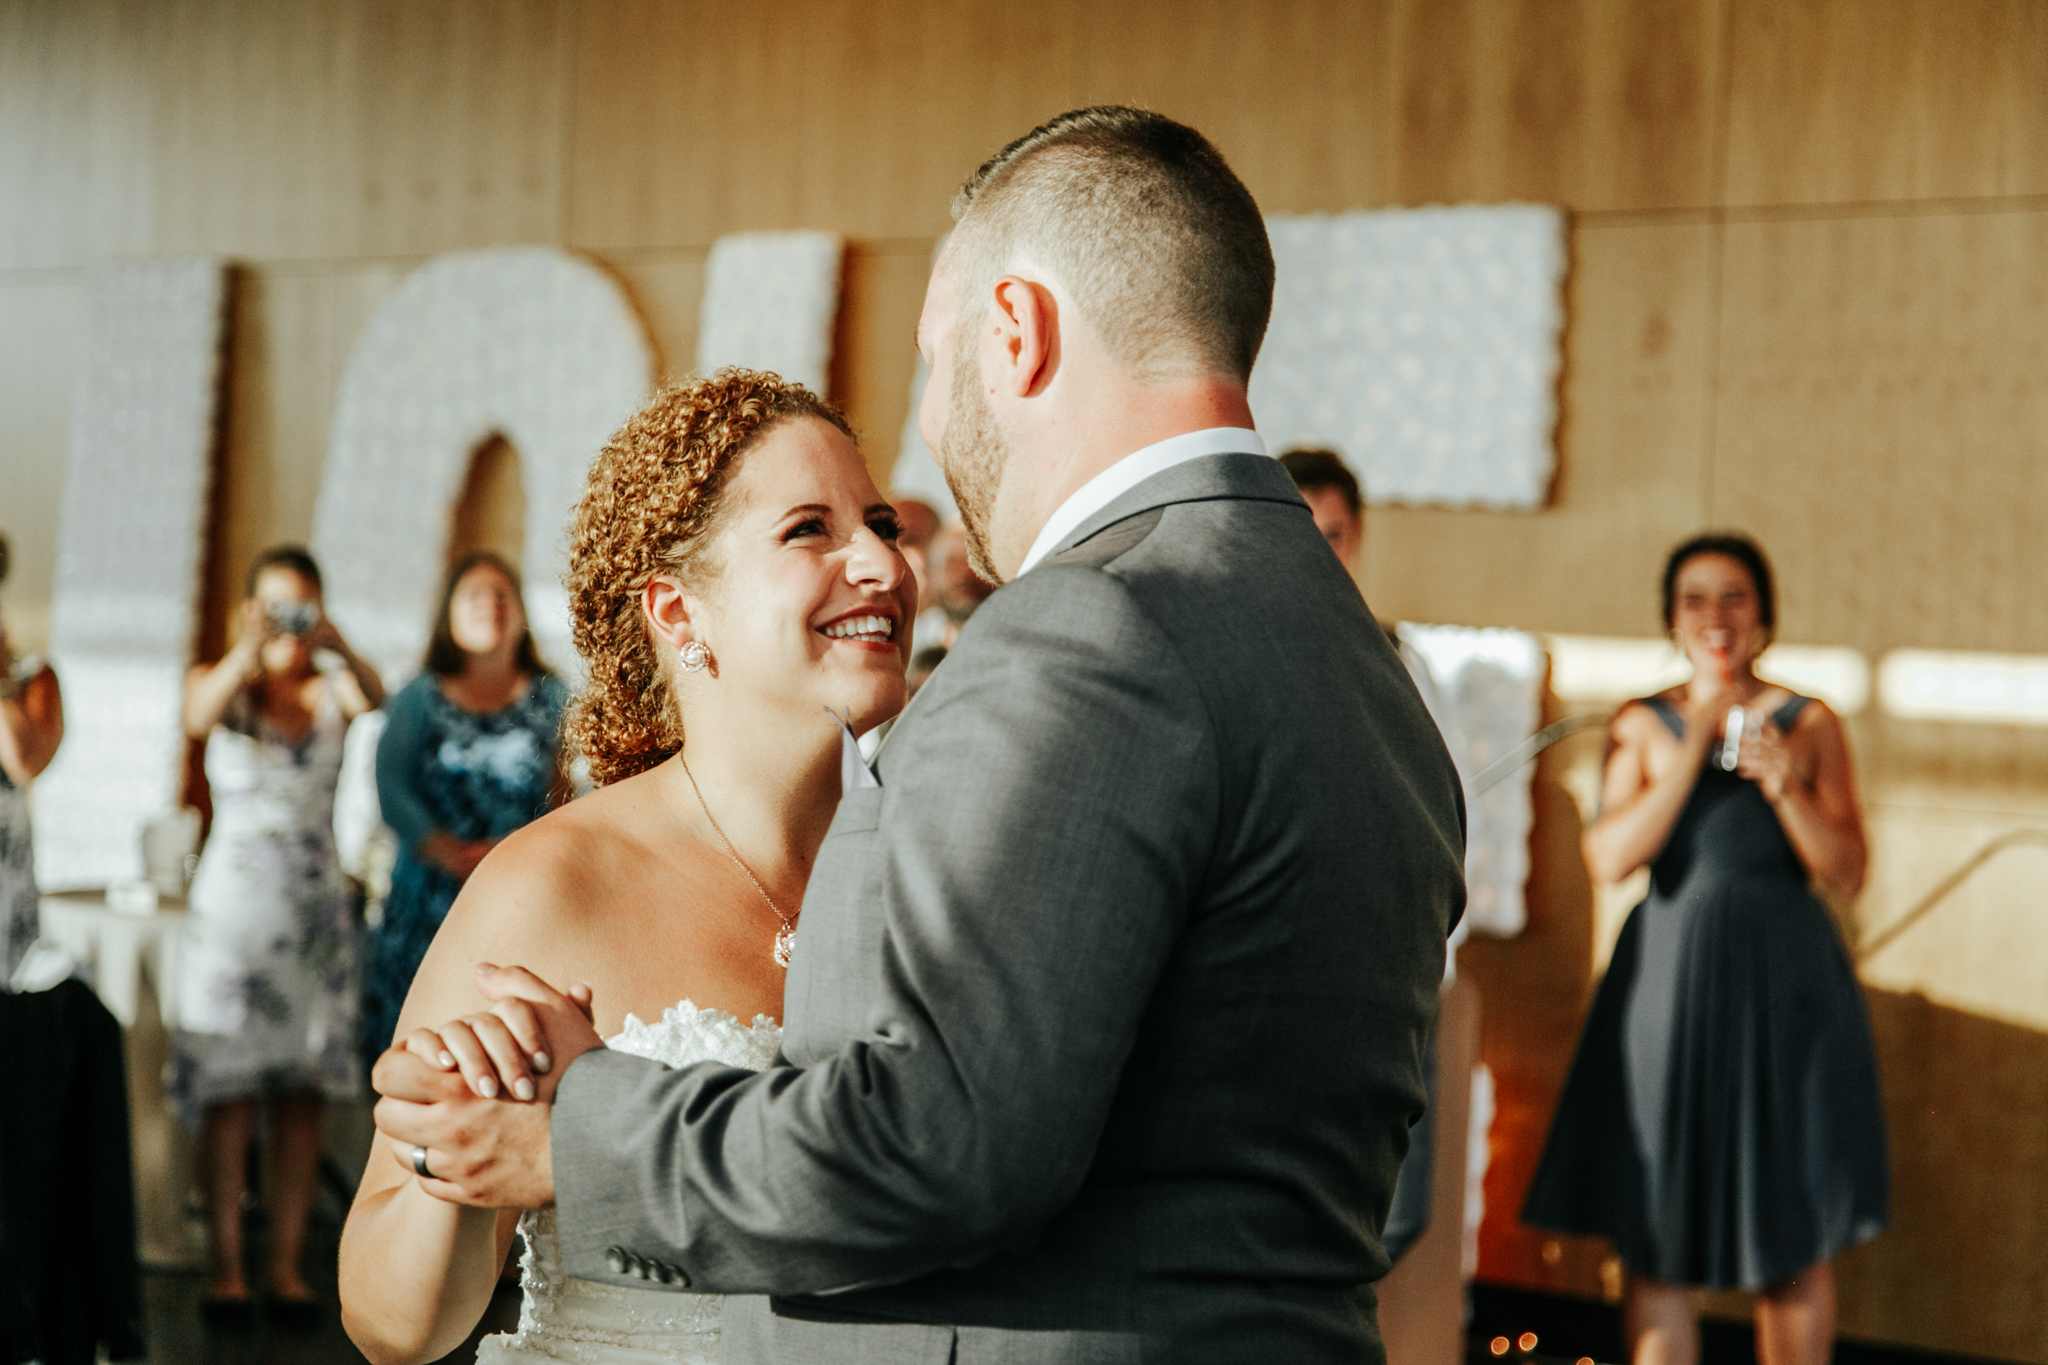 lethbridge-wedding-photographer-love-and-be-loved-photography-trent-danielle-galt-reception-picture-image-photo-201.jpg